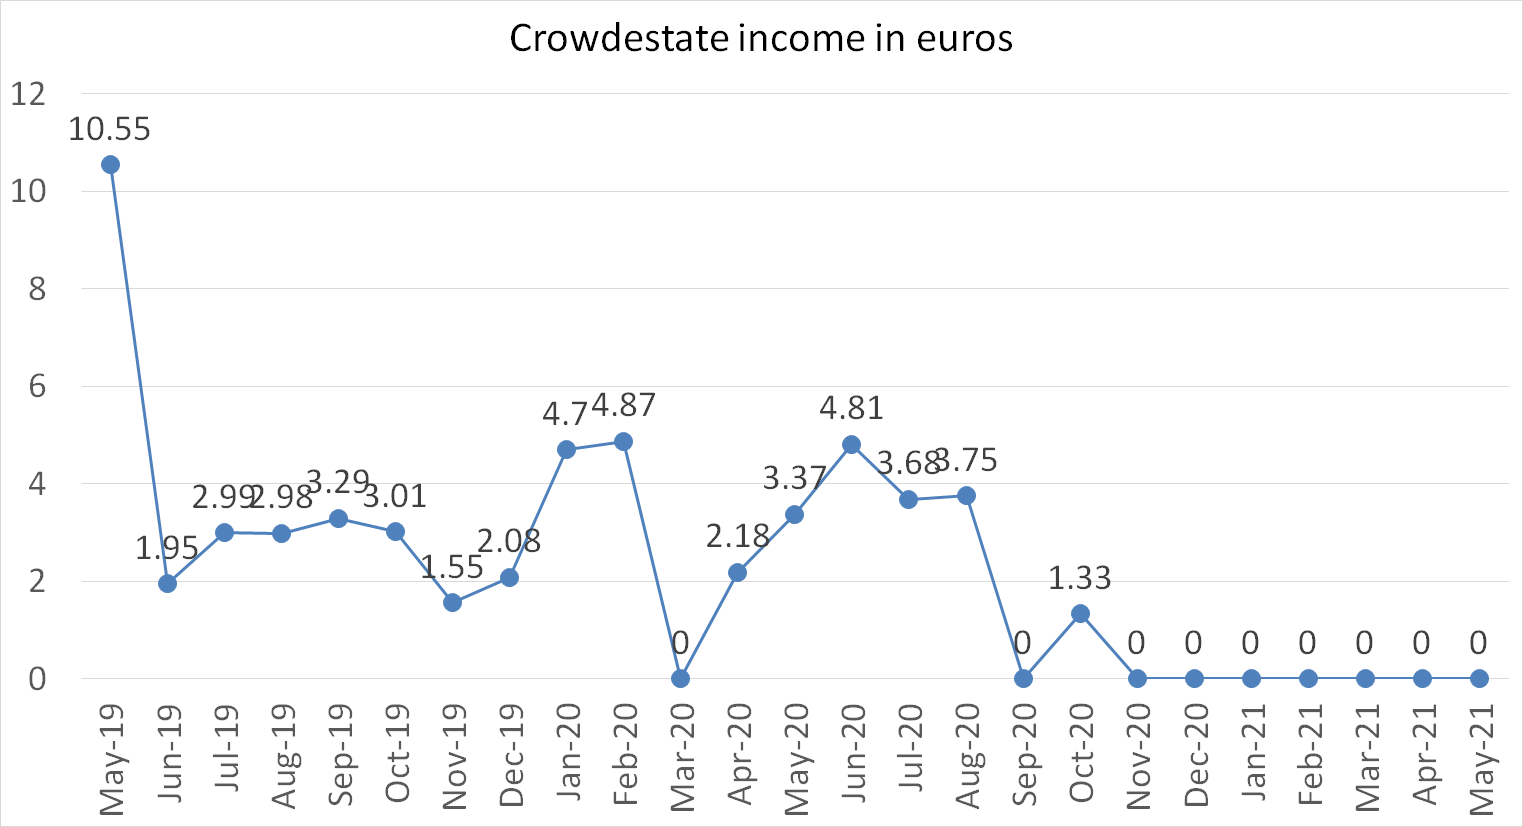 crowdesttate income in euros in may 2021